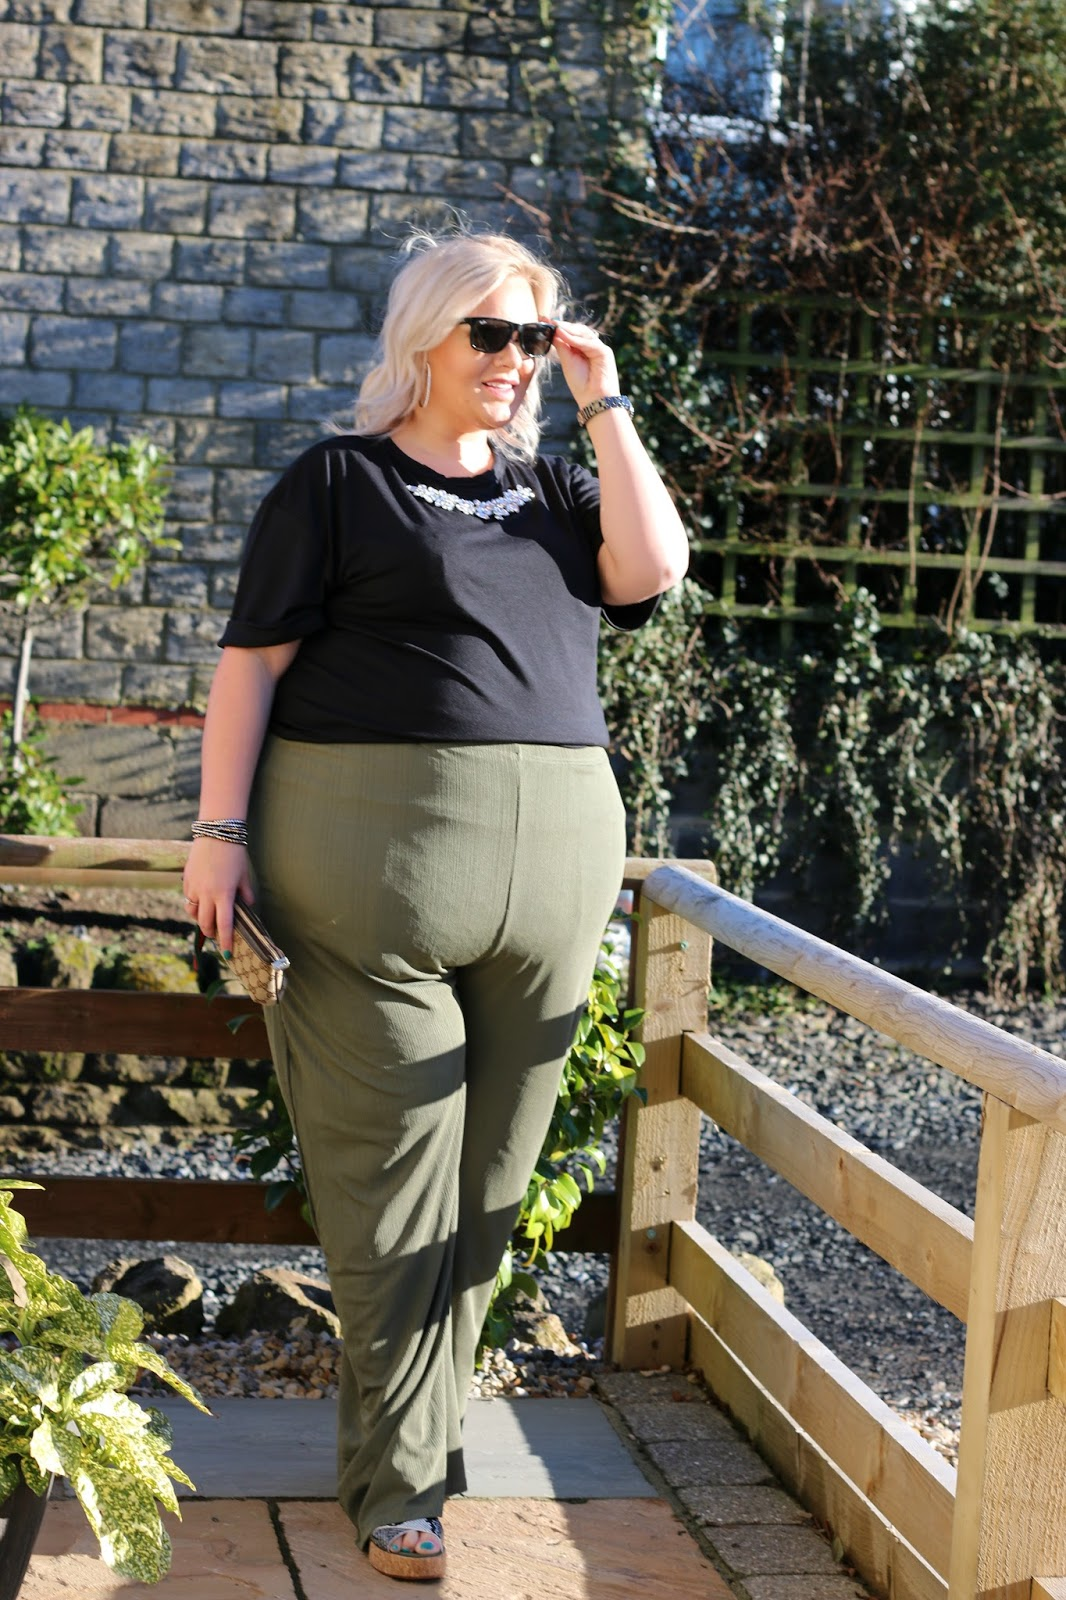 Summer Fashion Trends That I Love Year After Year by UK Plus Size Blogger WhatLauraLoves